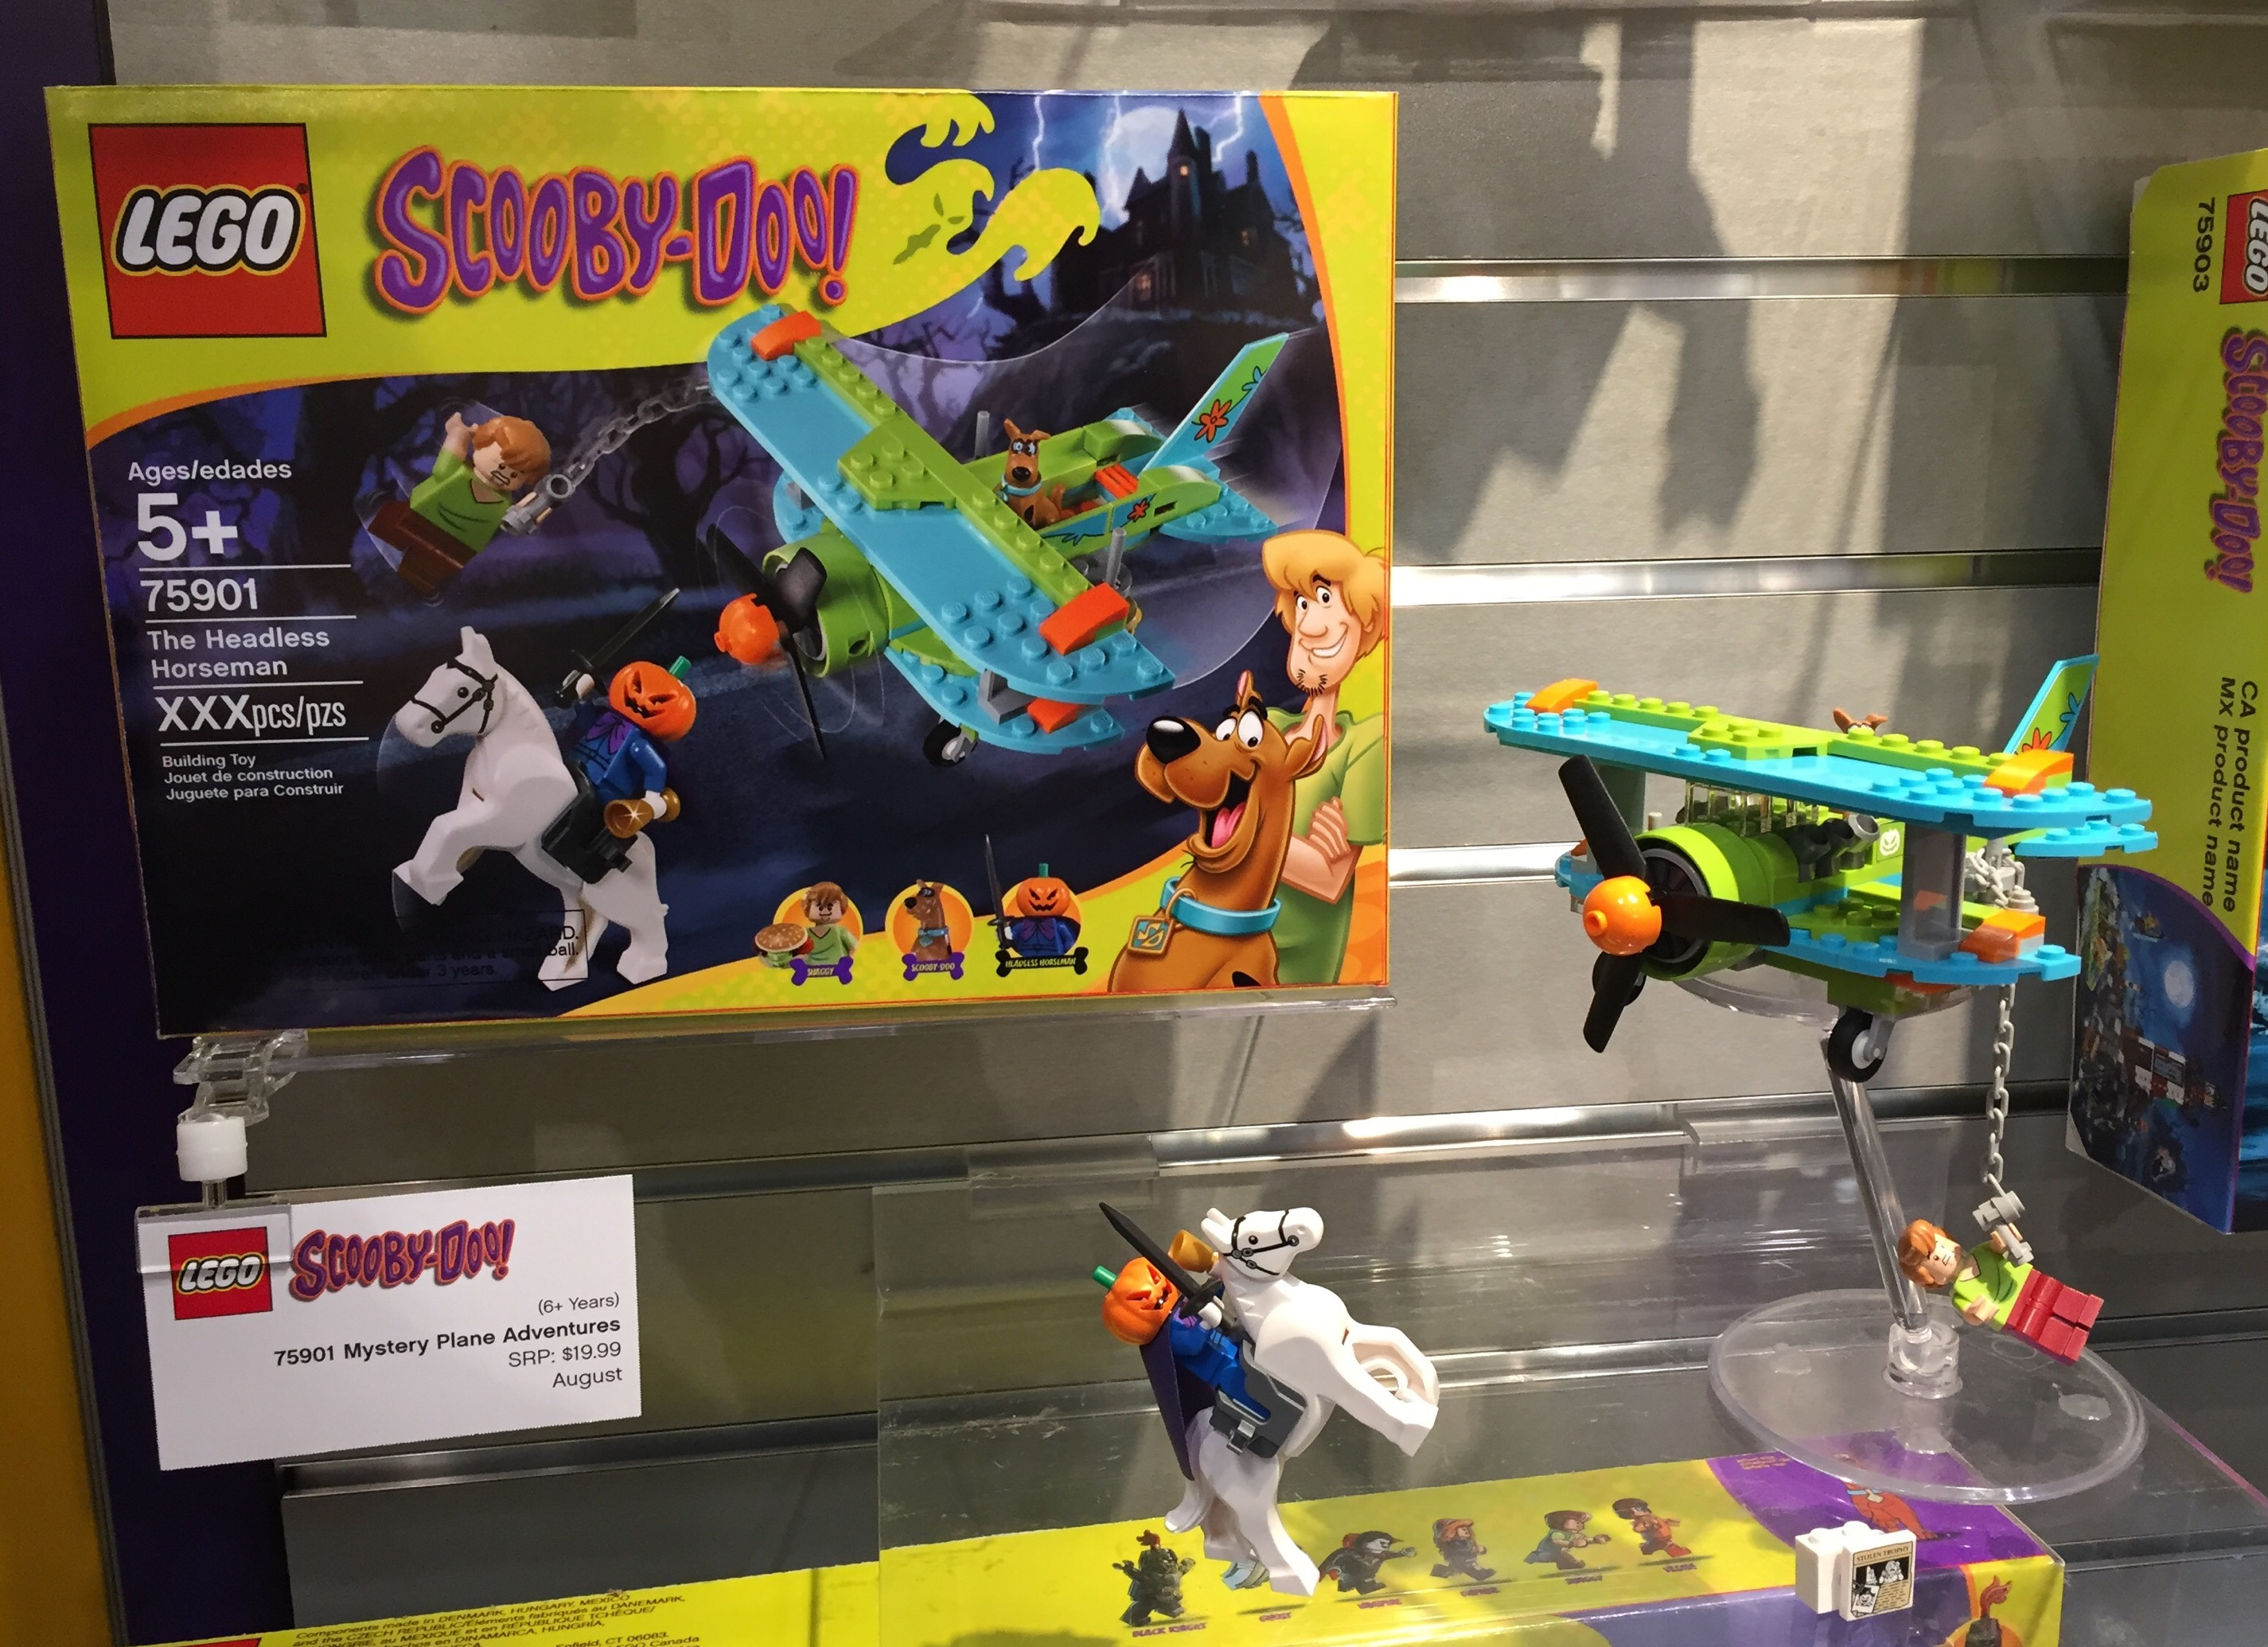 Scooby Doo The Mystery Plane Adventures 75901 Scooby Doo